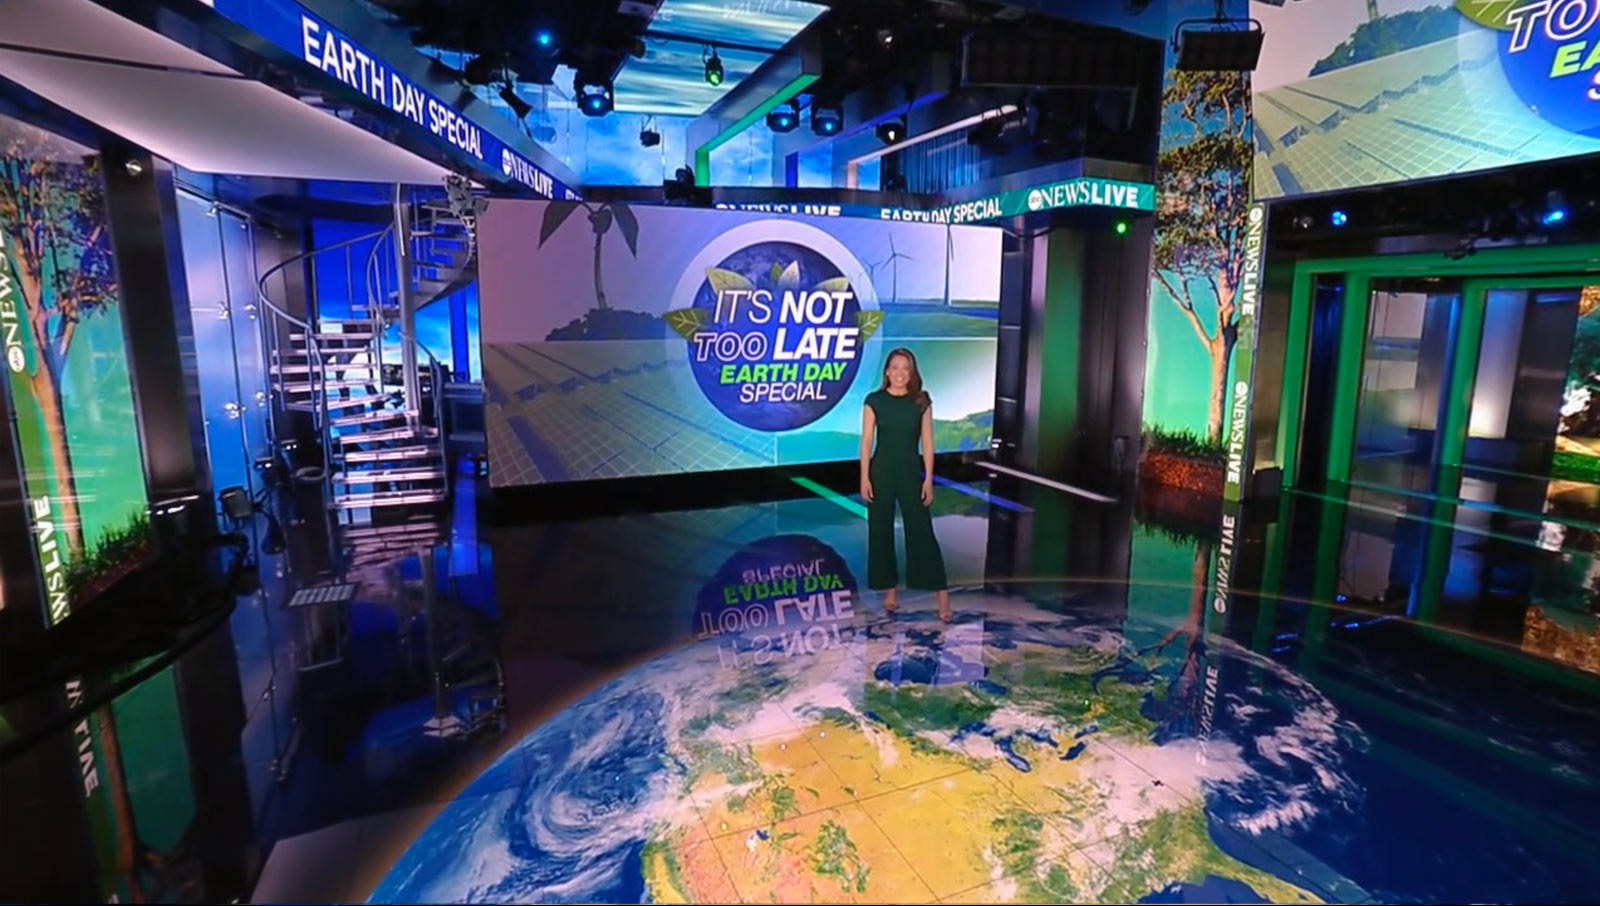 ABC News Live: Earth Day special- set screen design by K Brandon Bell